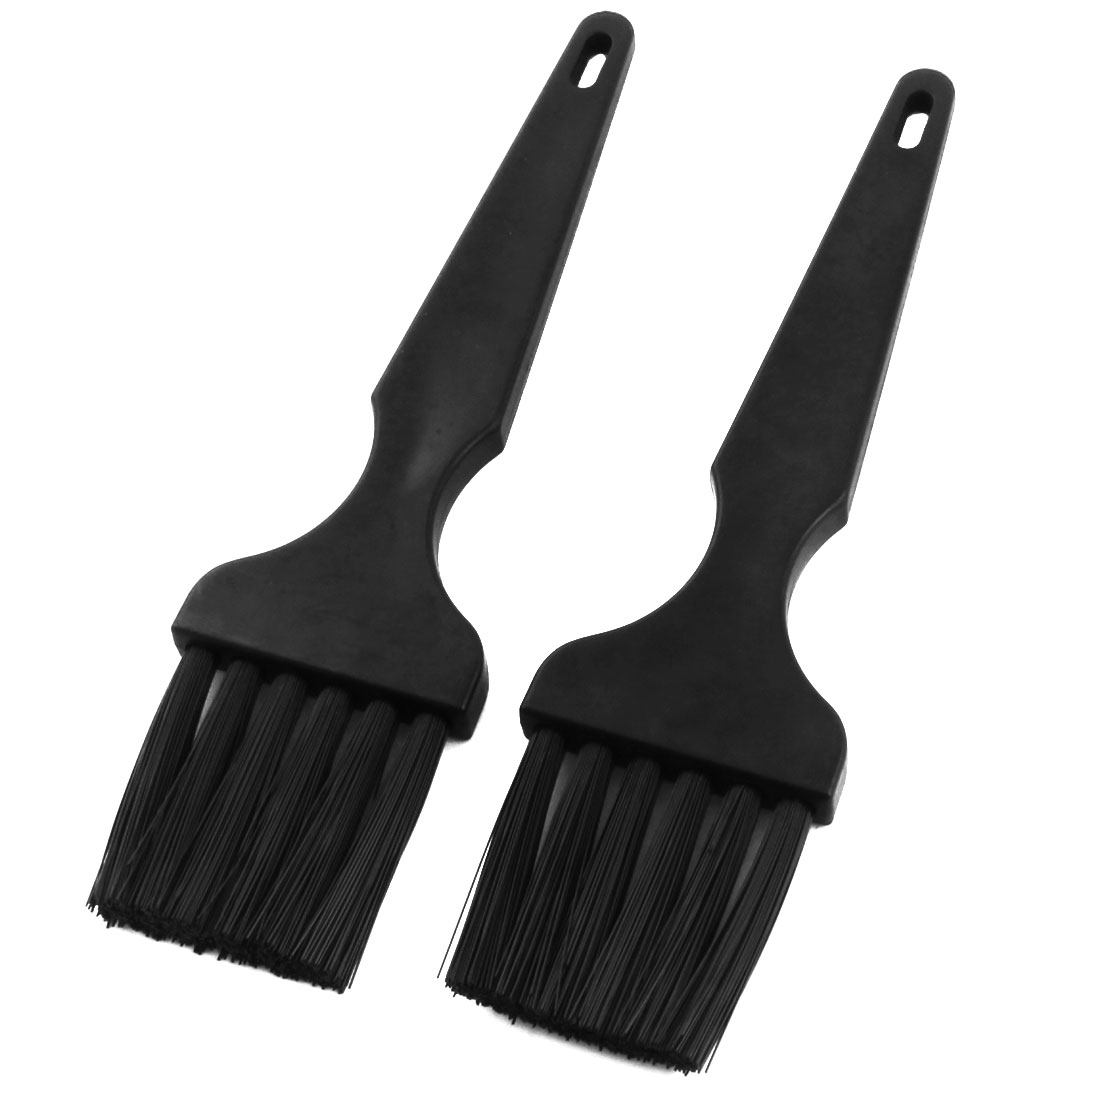 2Pcs Black Straight Plastic Handle PCB Motherboards Dust Cleaning Tool ESD Anti-static Brush for PCB Motherboards